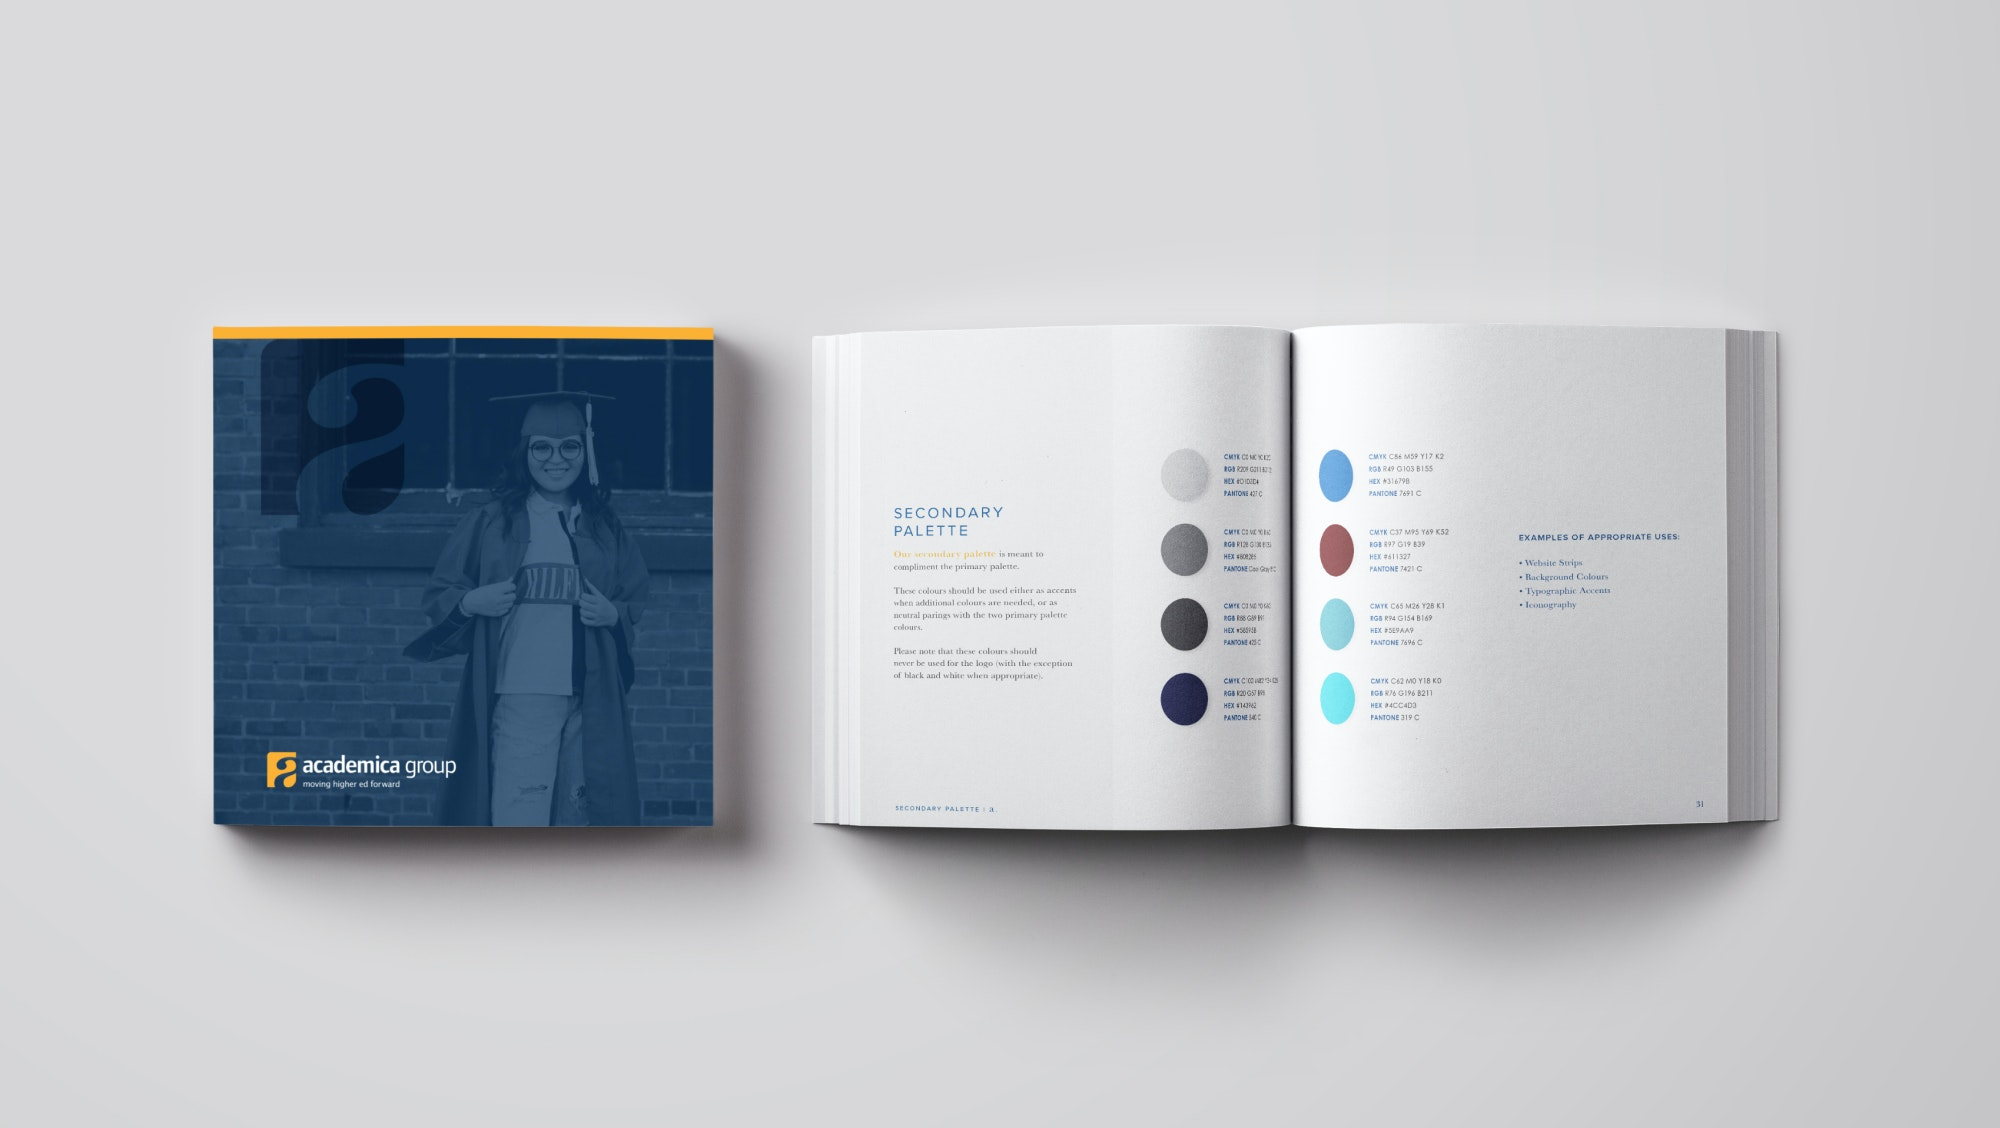 Academica brand guidelines